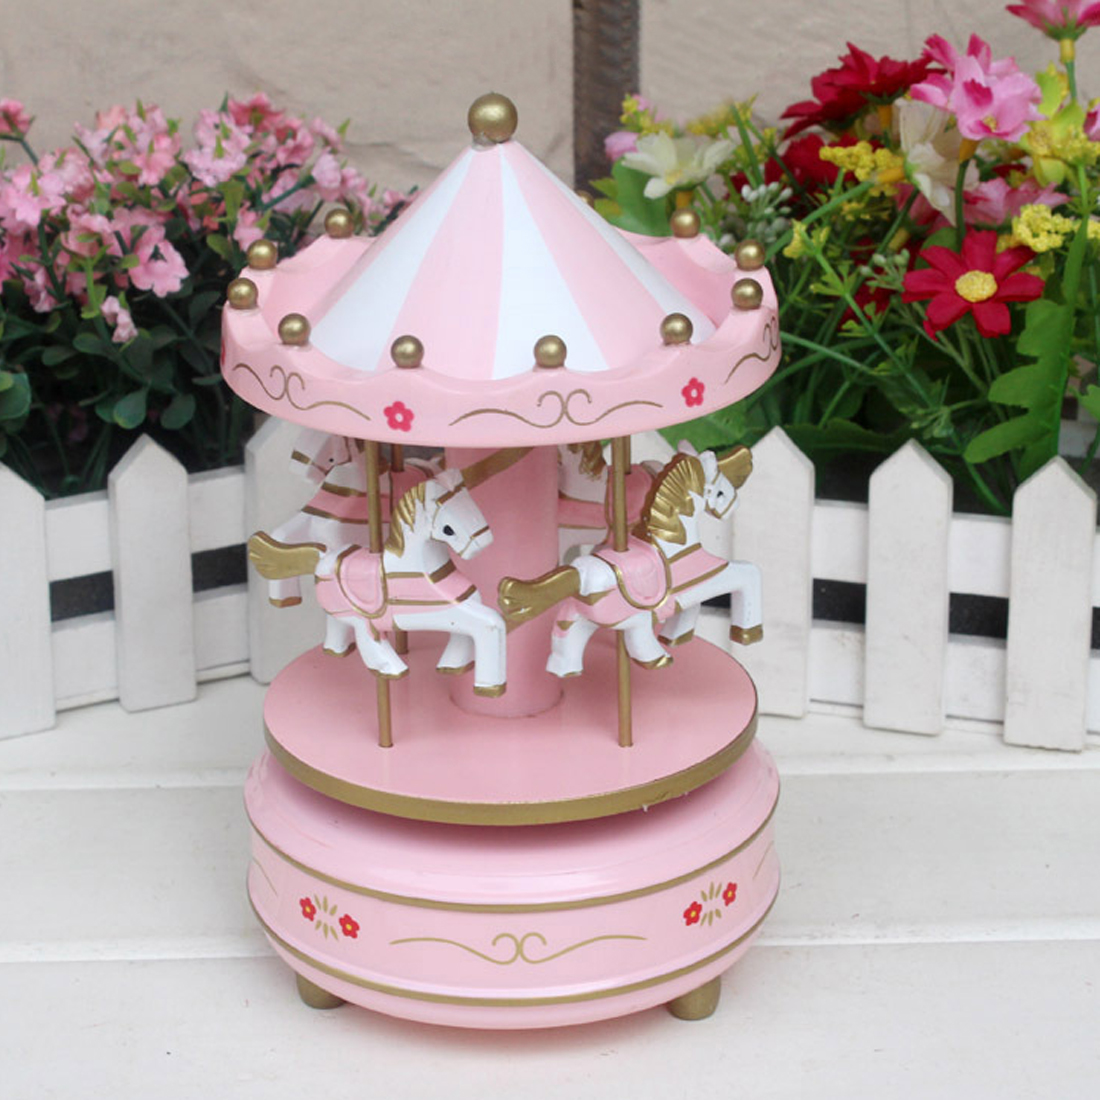 Cute Merry Go Round Musical carousel horse wooden carousel music box toy child game Home Decor Christmas Wedding Birthday Gift